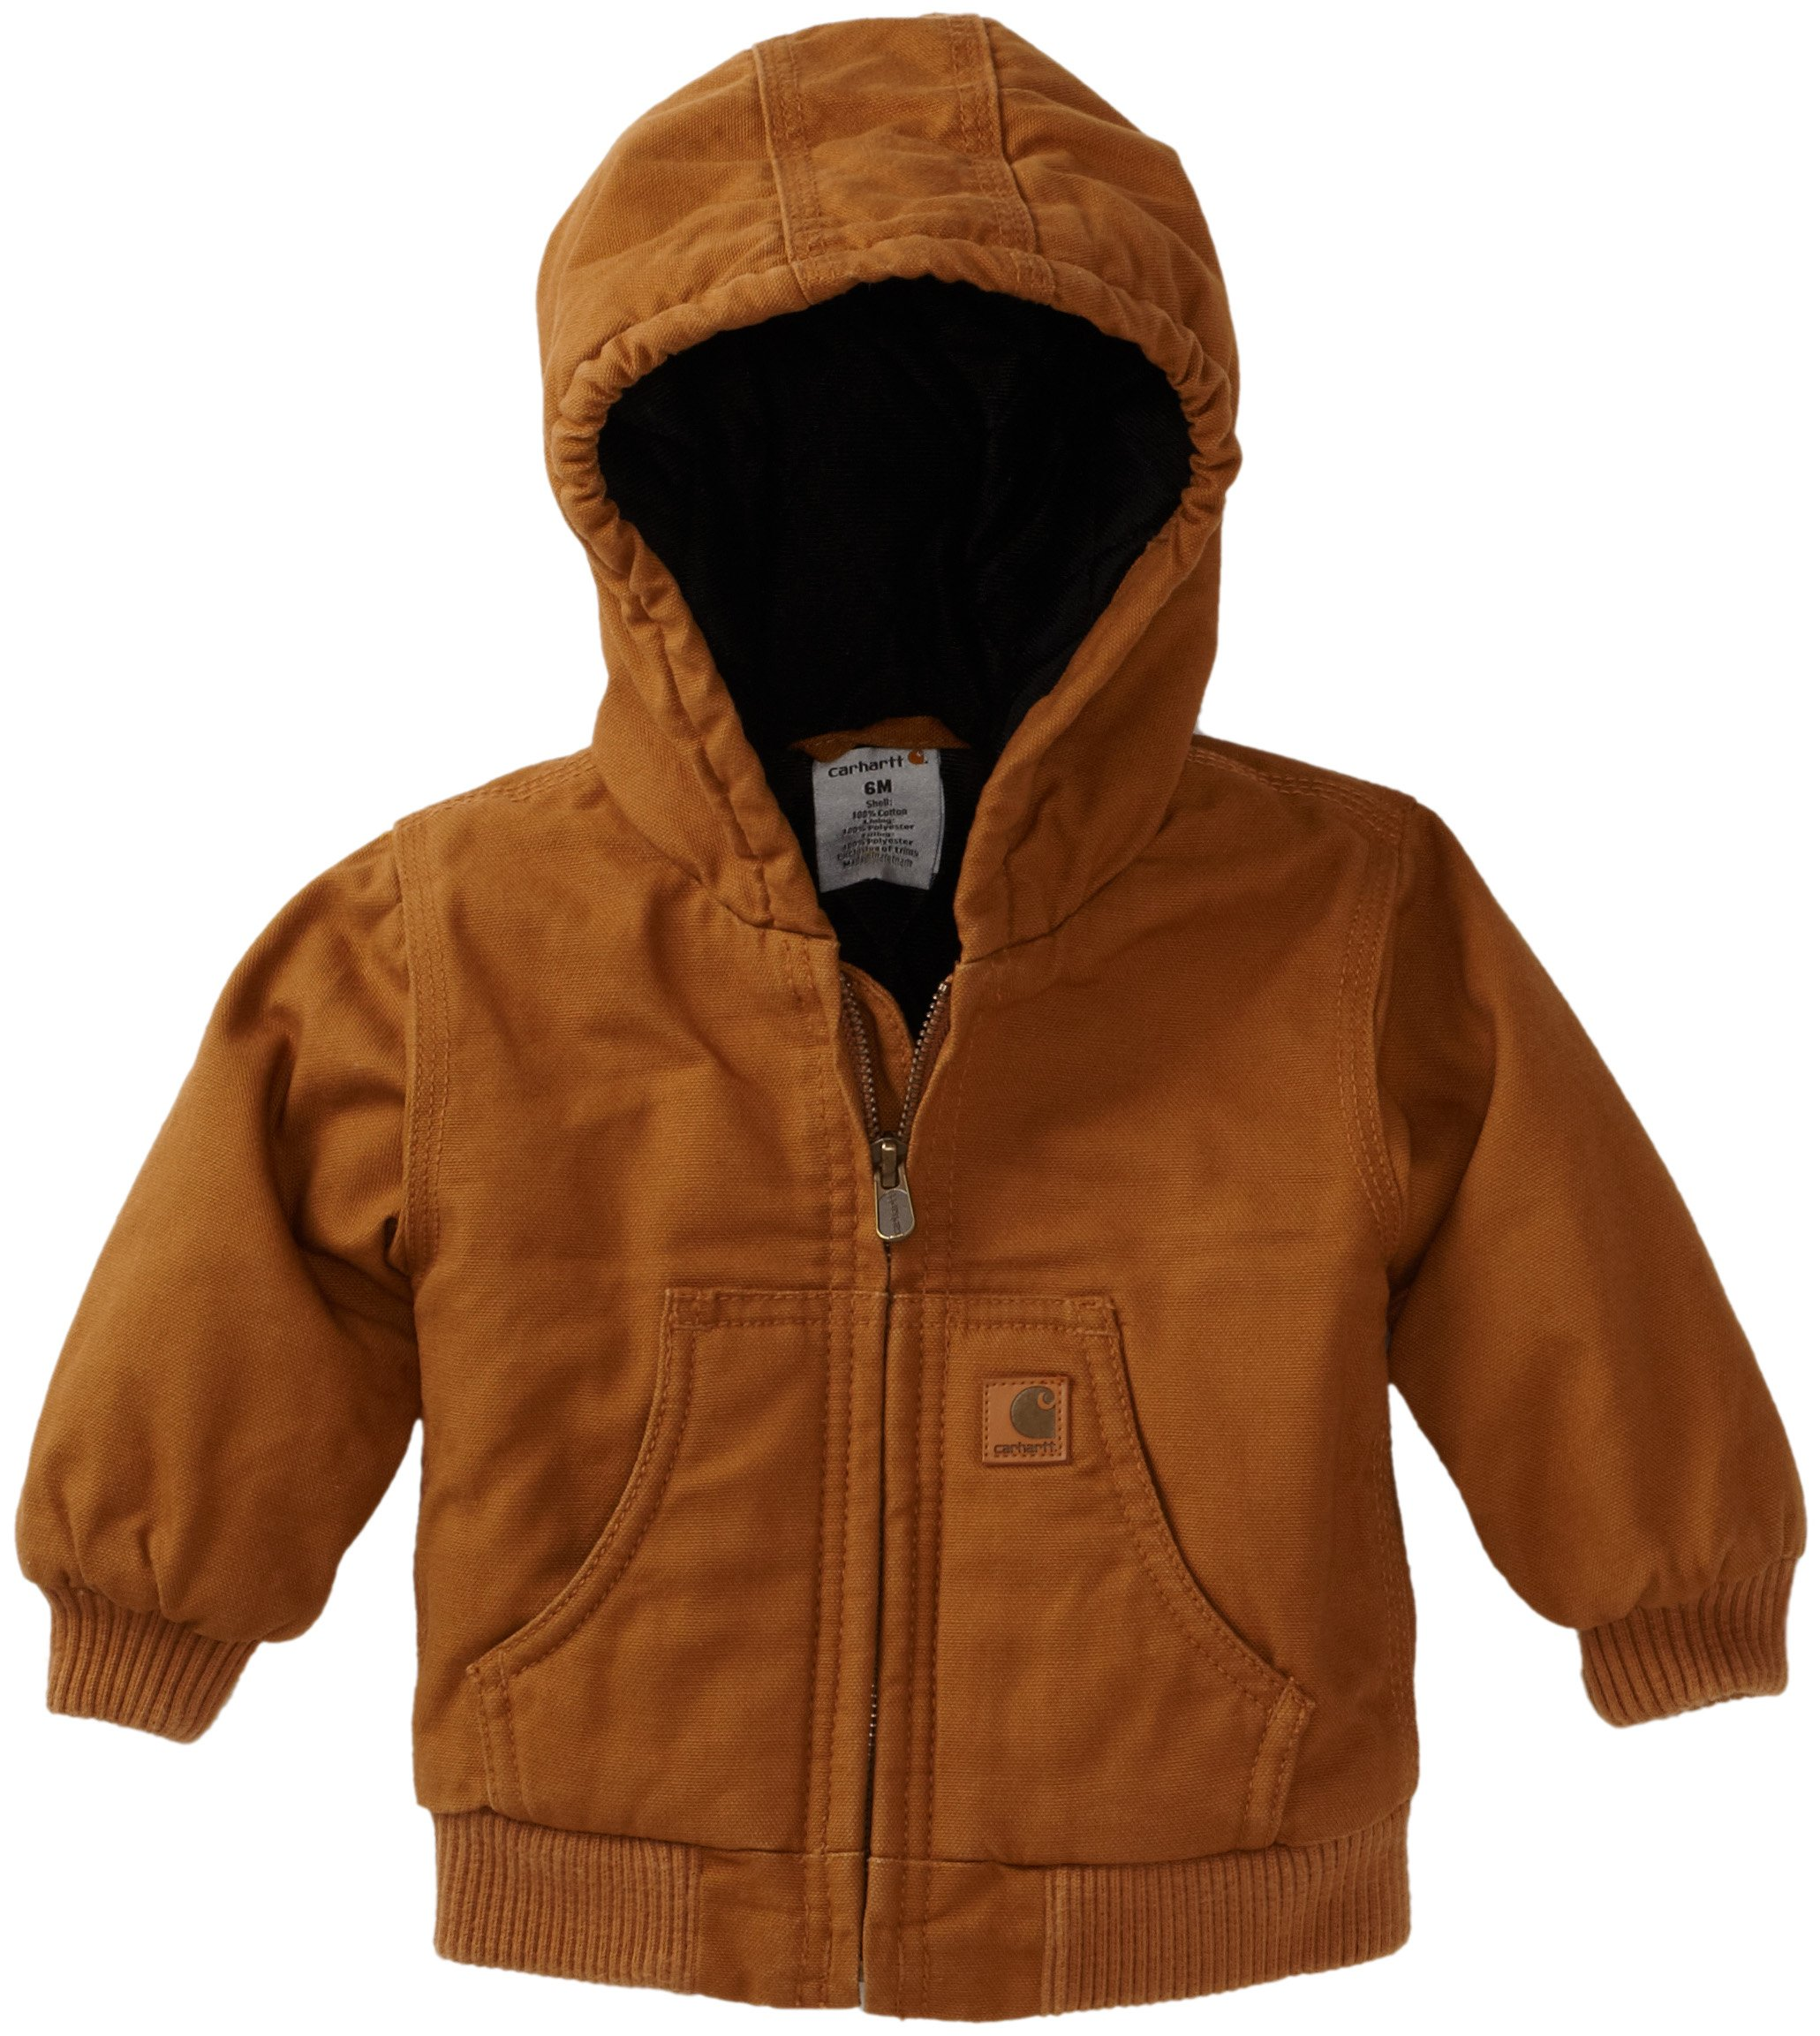 f97021057cc3 Galleon - Carhartt Baby Boys  Active Quilted Flannel Lined Jacket ...